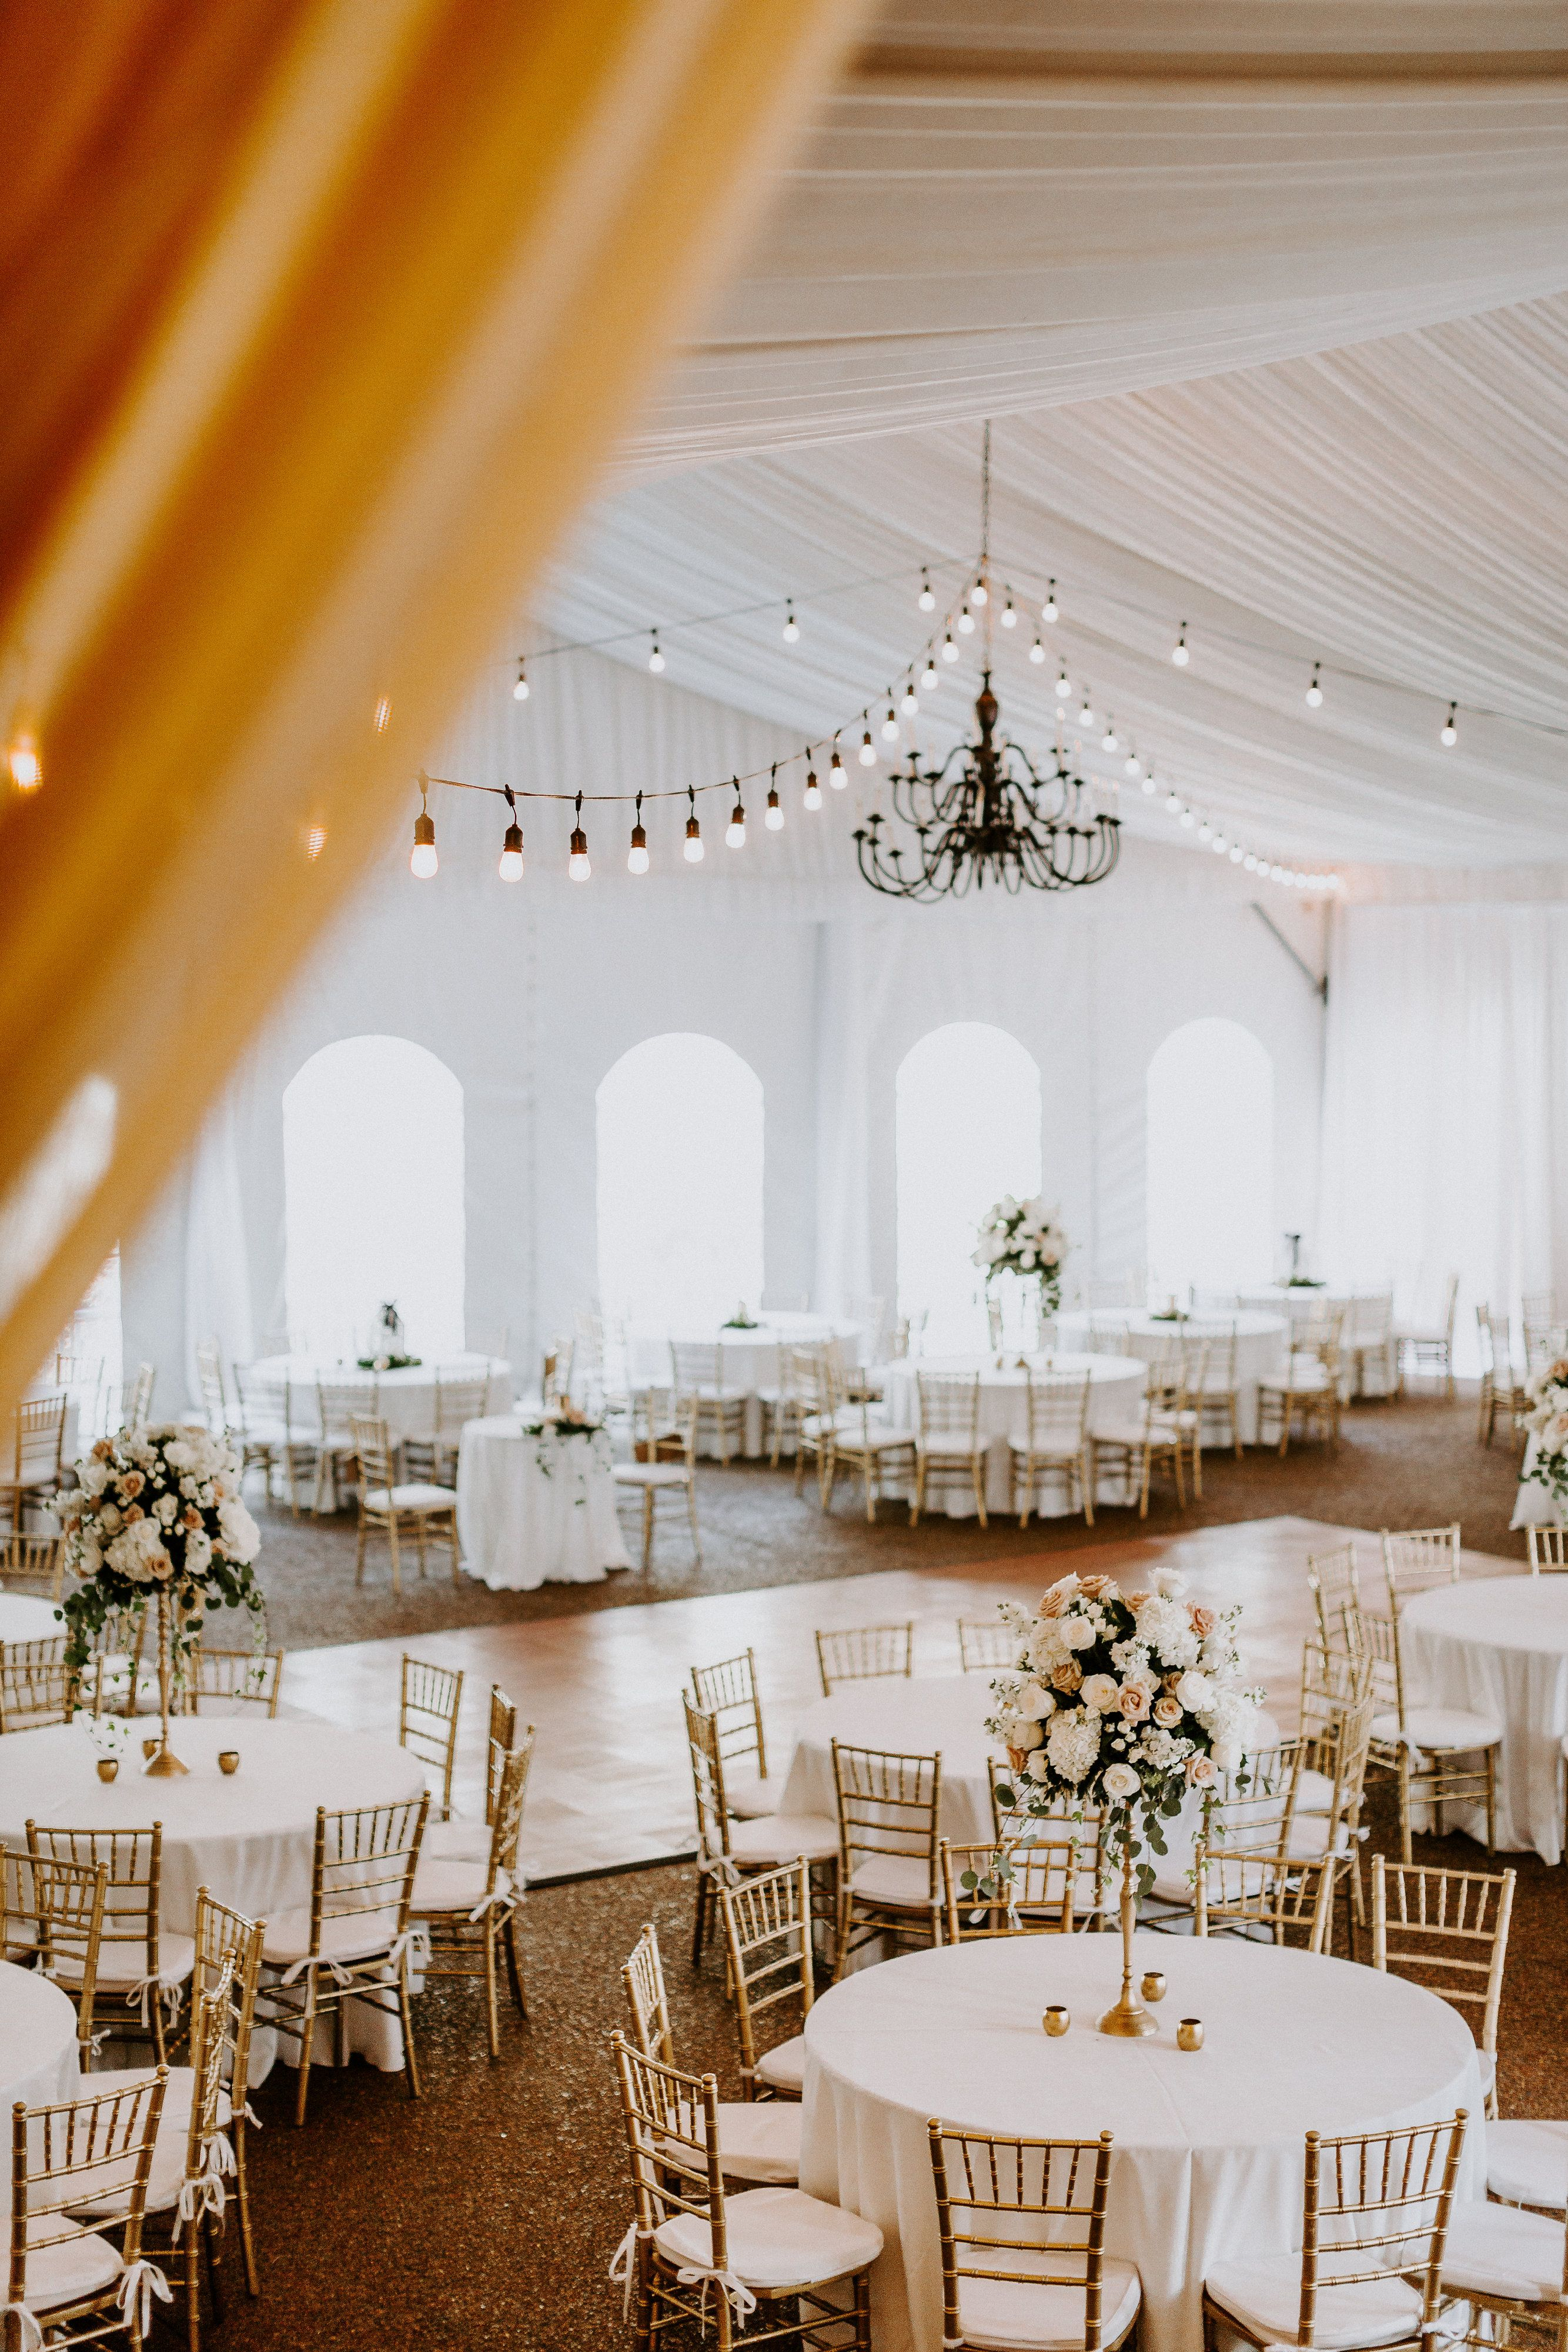 Pavilion Shot With Chandelier At Riverwood Mansion In Nashville Tennessee Photography Mansion Wedding Venues Nashville Wedding Venues Rehearsal Dinner Venues